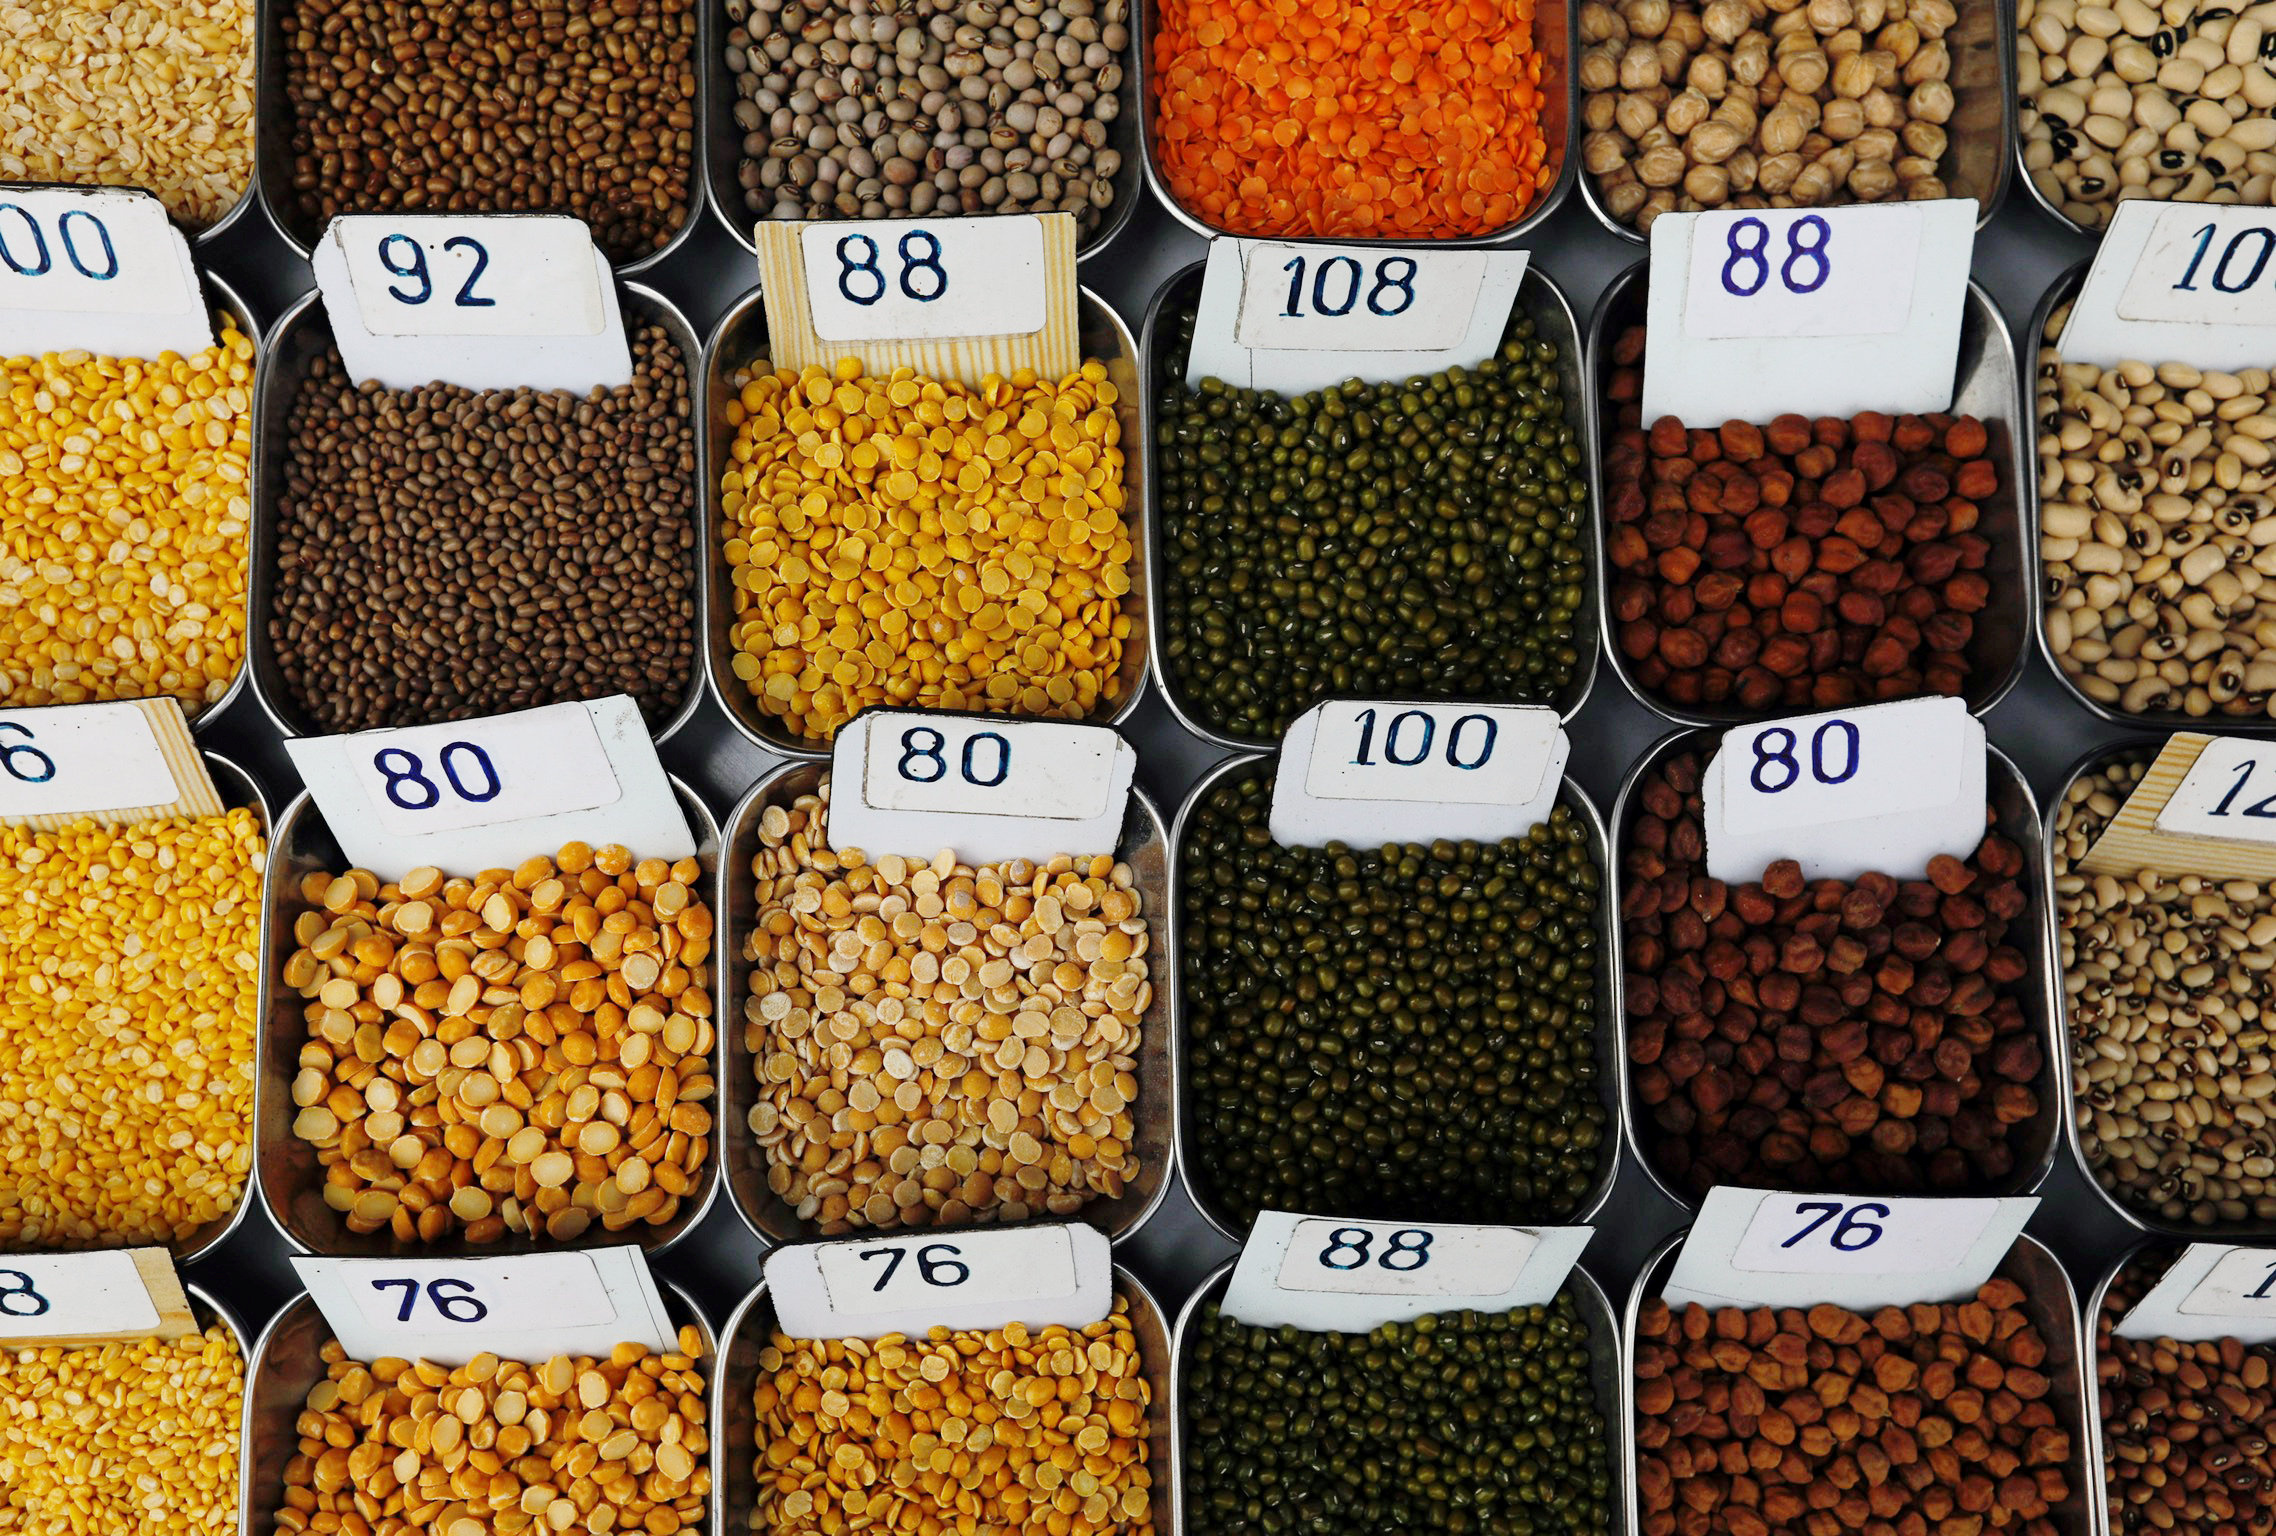 Price tags are seen on the samples of pulses that are kept on display for sale at a market in Mumbai, India January 29, 2018. REUTERS/Danish Siddiqui/File photo